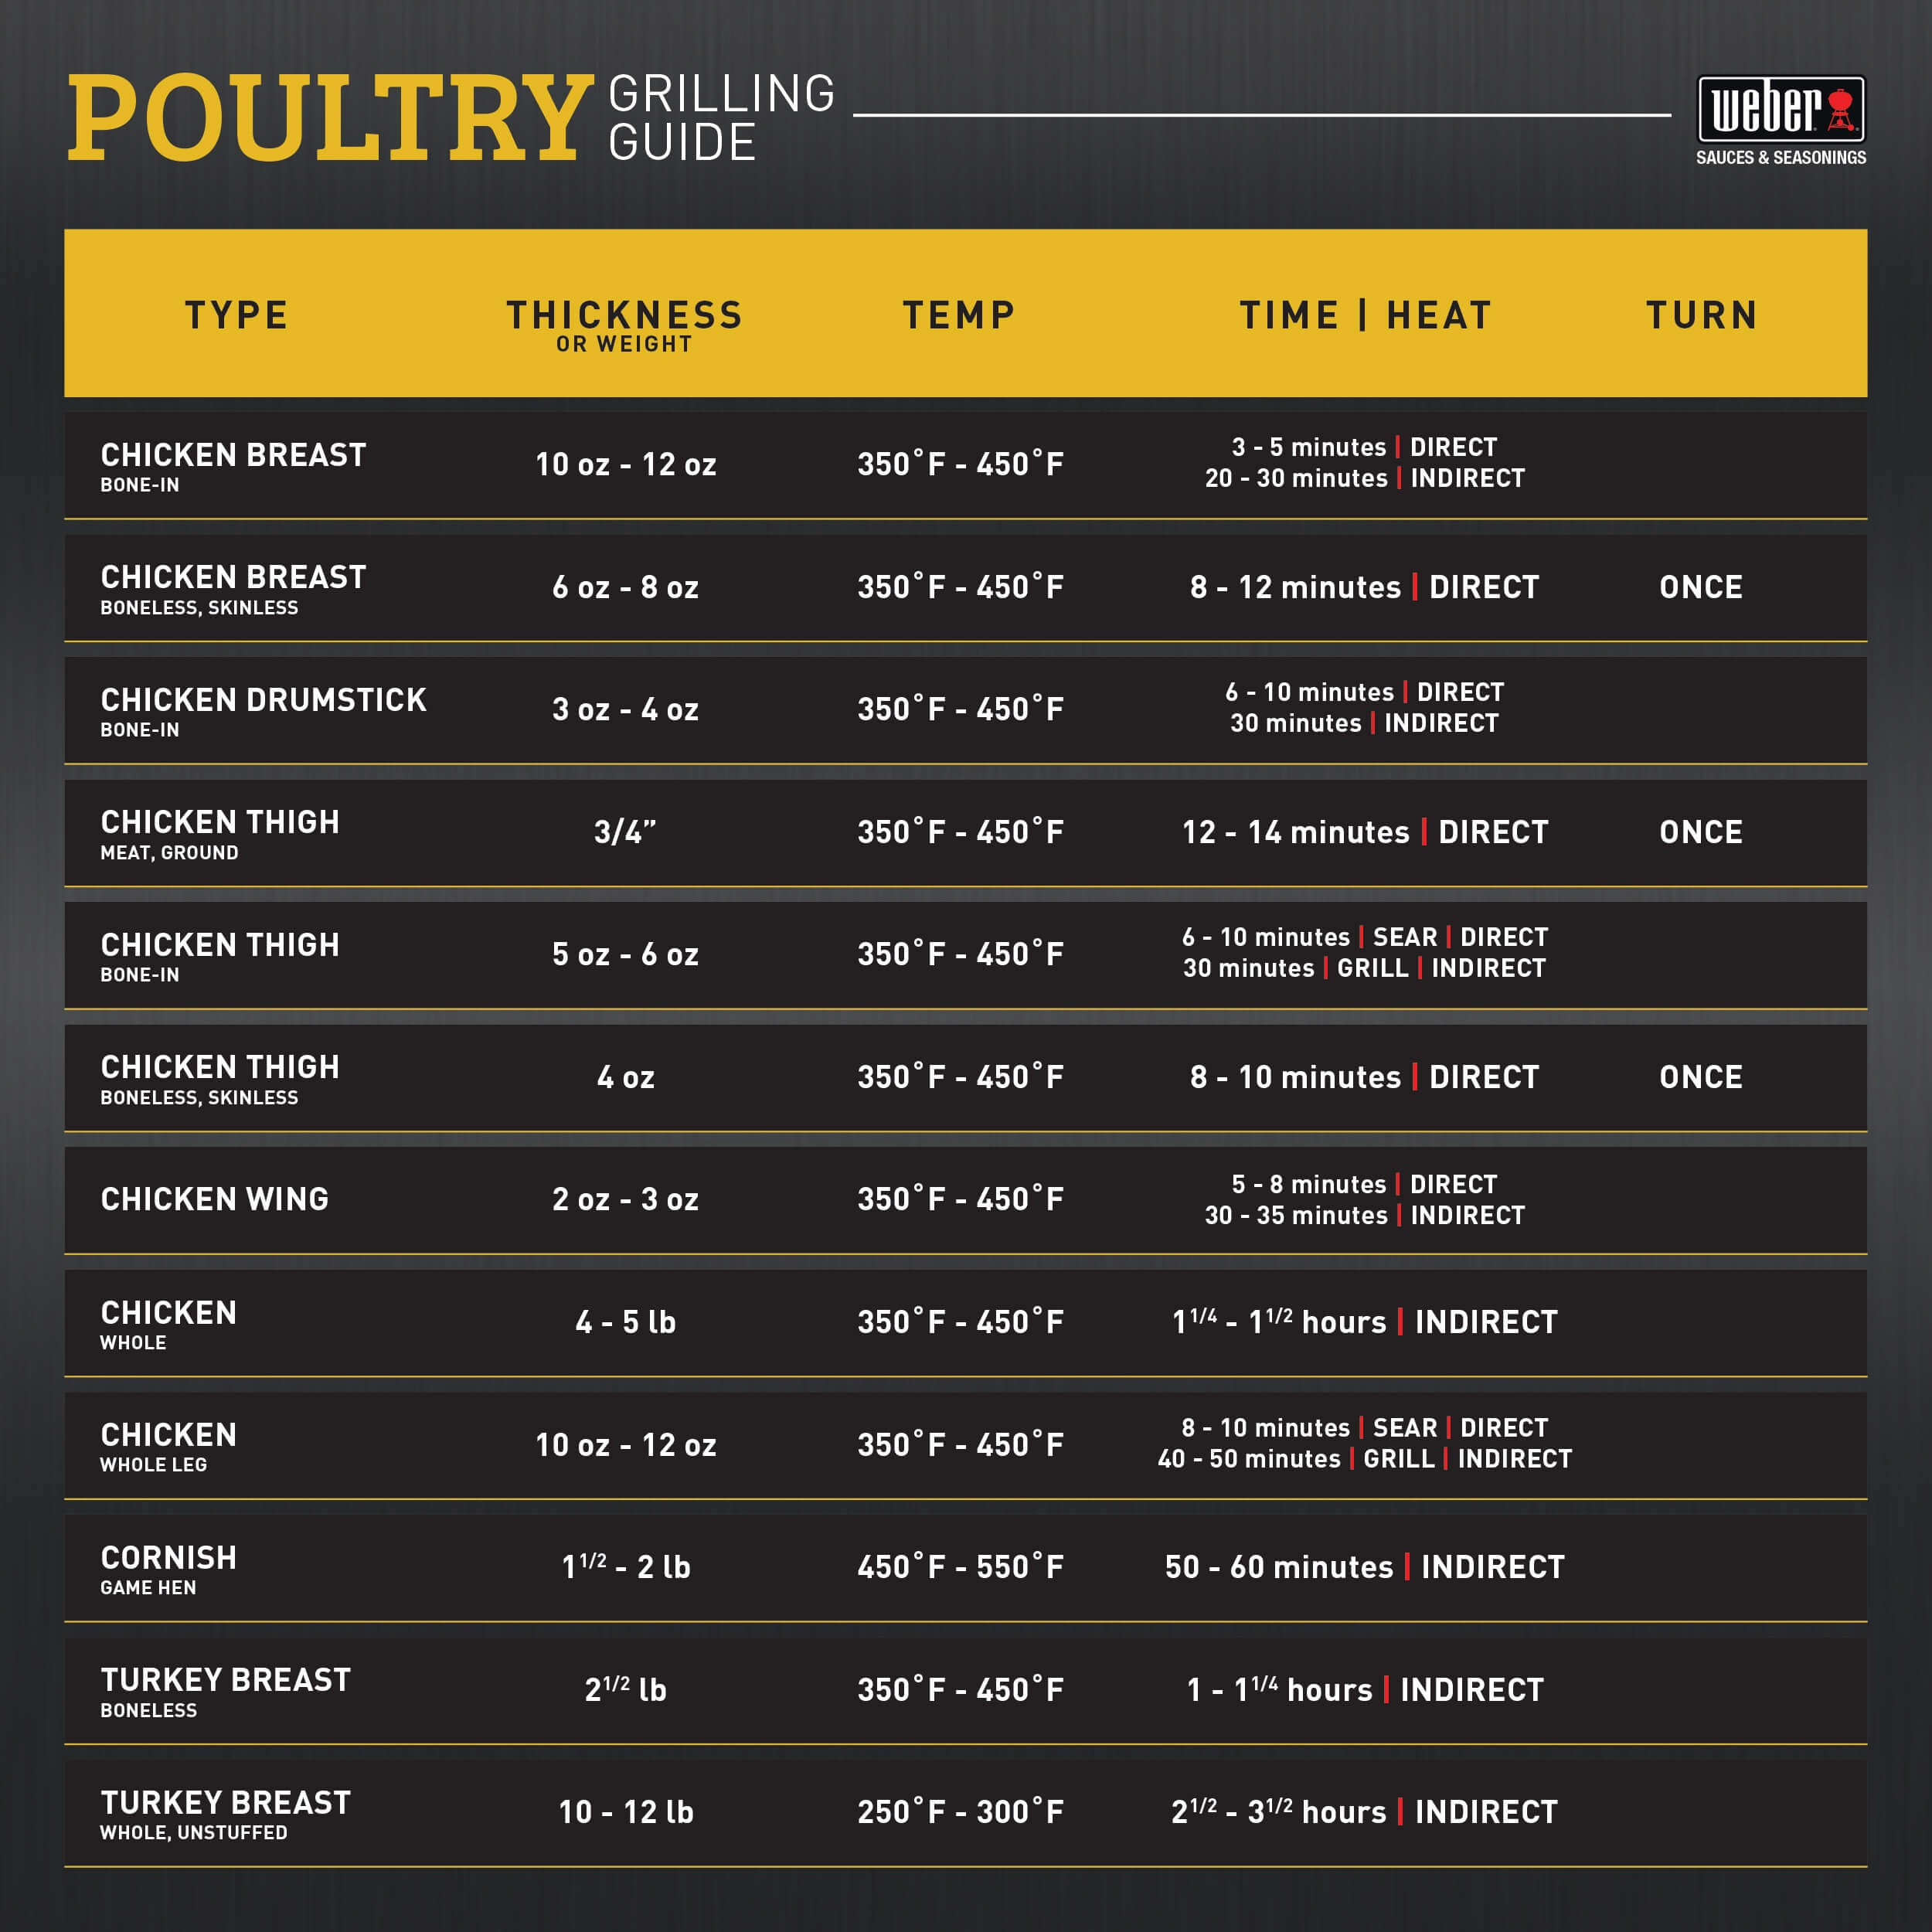 Poultry Grilling Guide